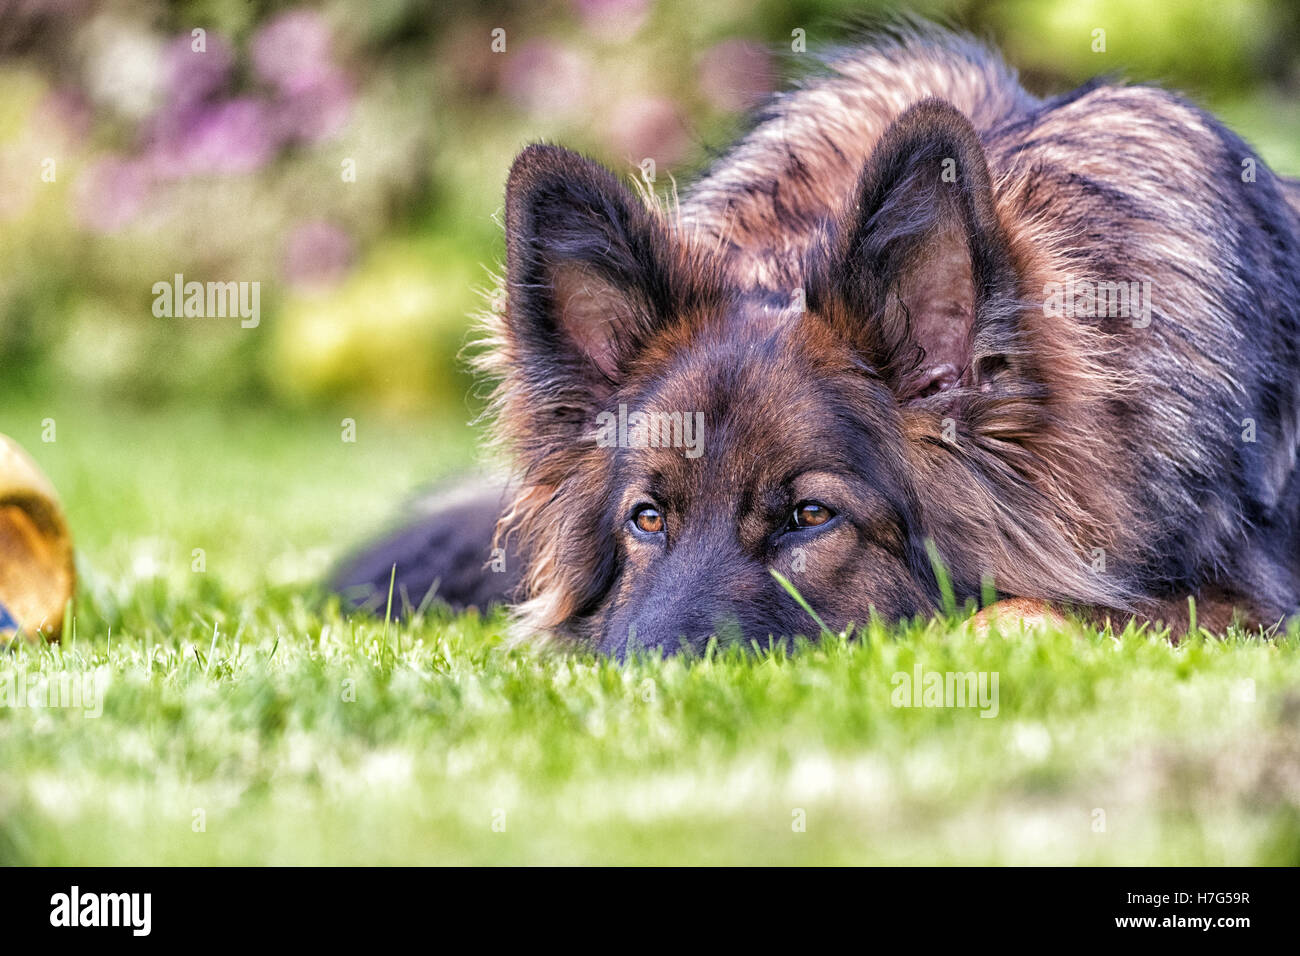 Big dog rests his head on the grass but has his ears up listening - Stock Image